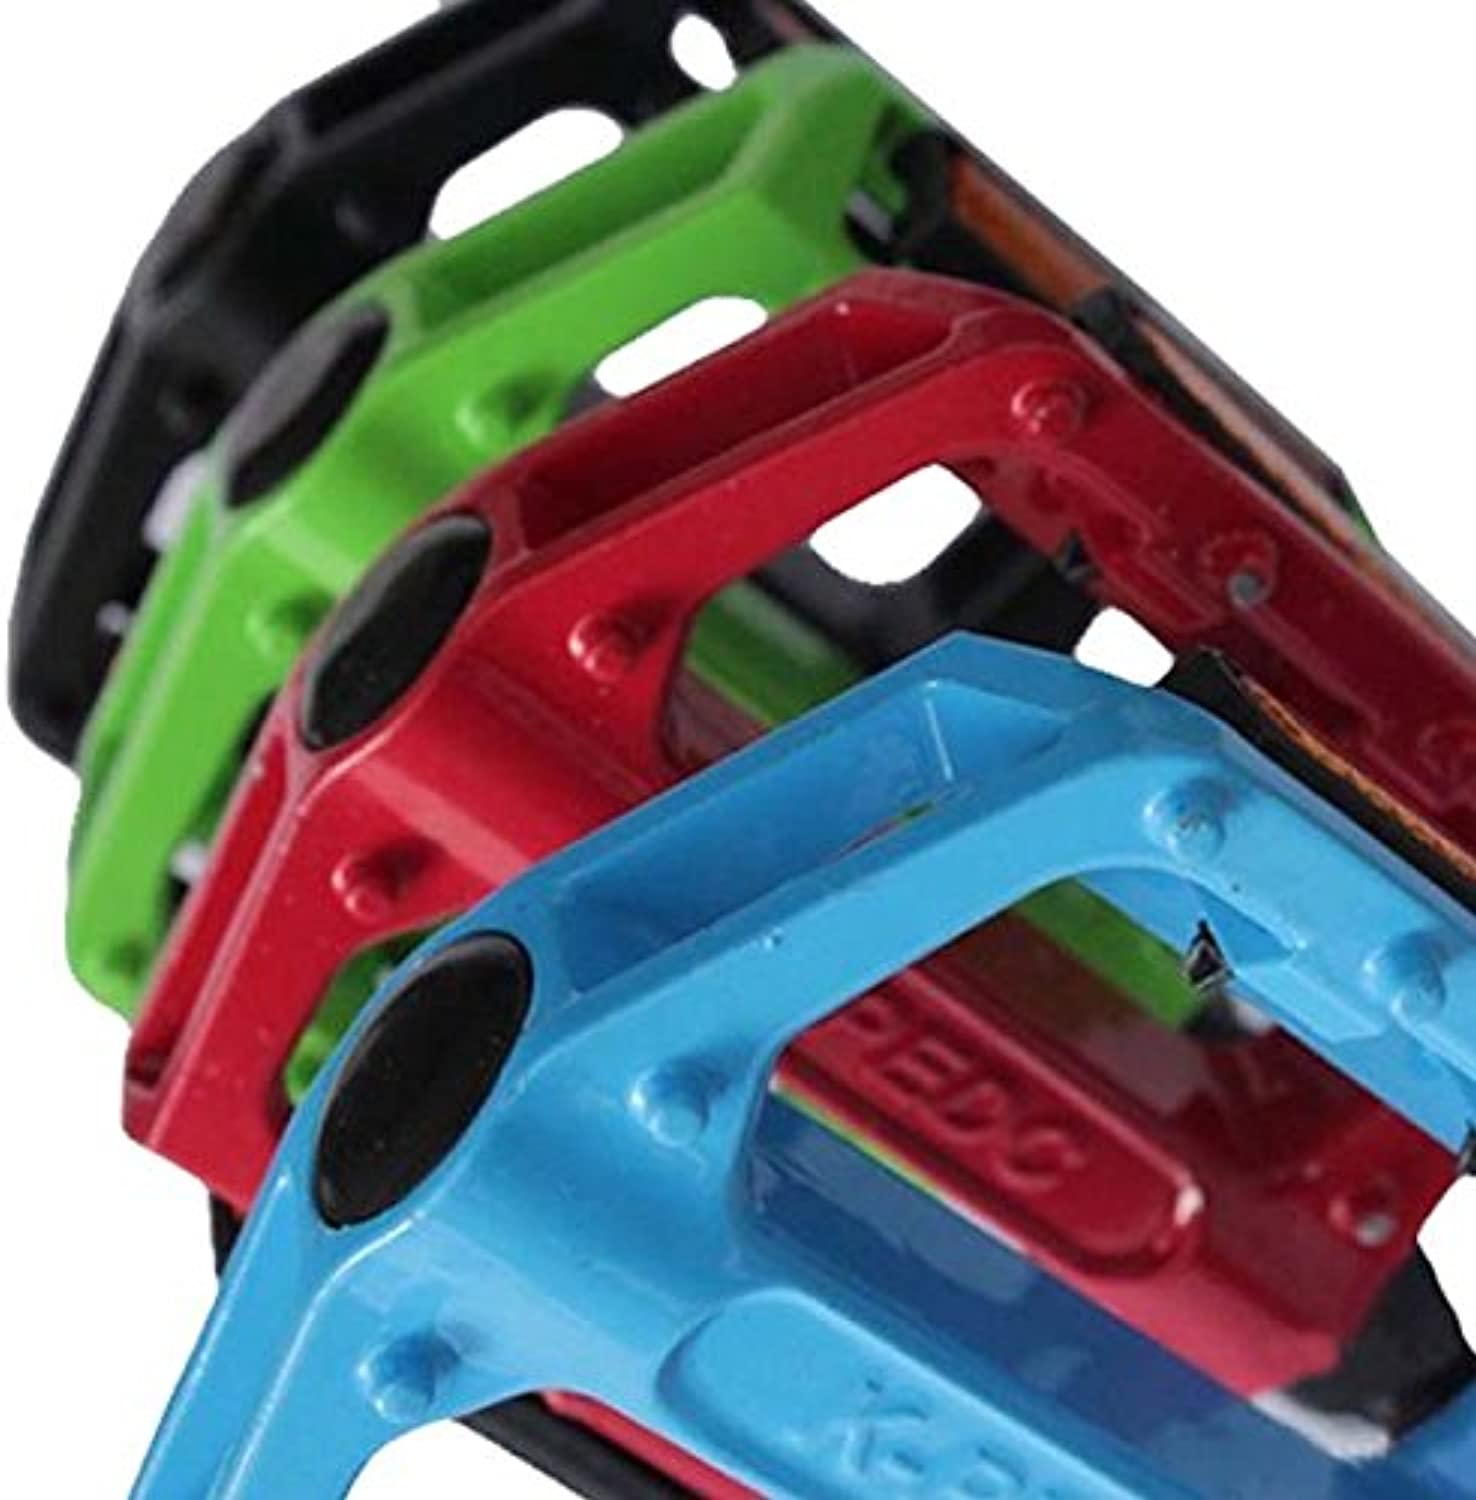 colorized Aluminum Alloy Bicycle Pedals Equiped with Reflectors  Parts & Components  Bike Pedals & Cleats